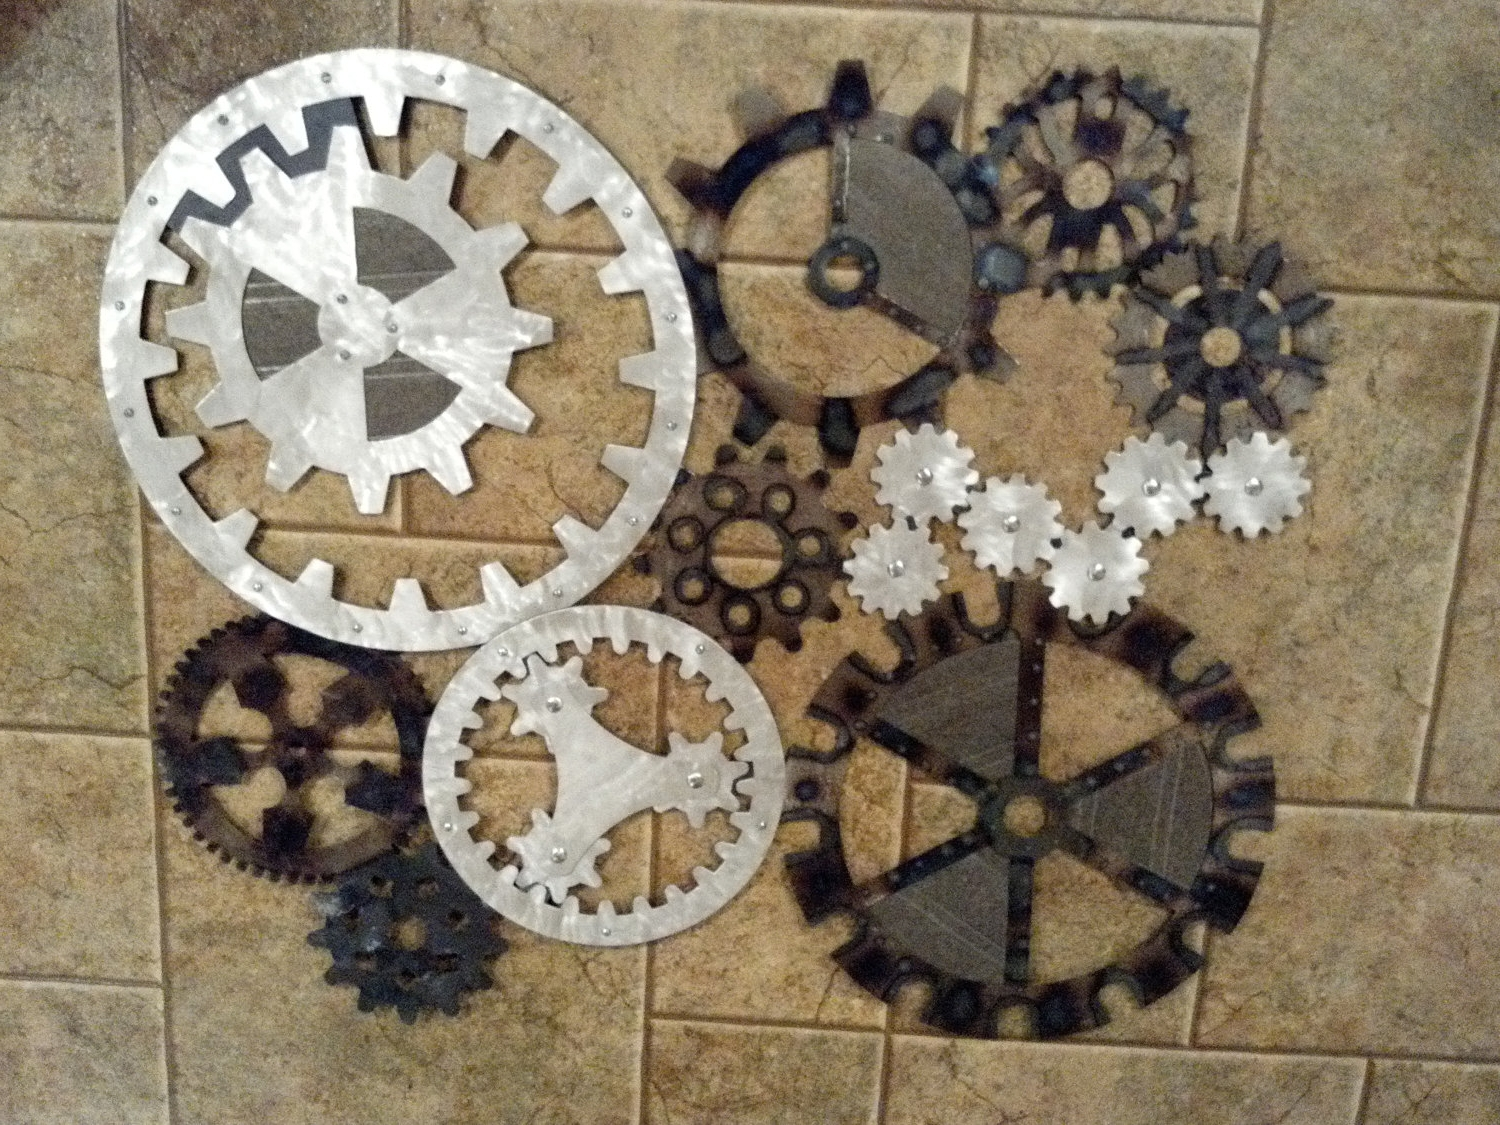 Well Liked Gears Art Industrial Steampunk Wall Decor Made Darkhorsegarage New Inside Steampunk Wall Art (View 6 of 15)